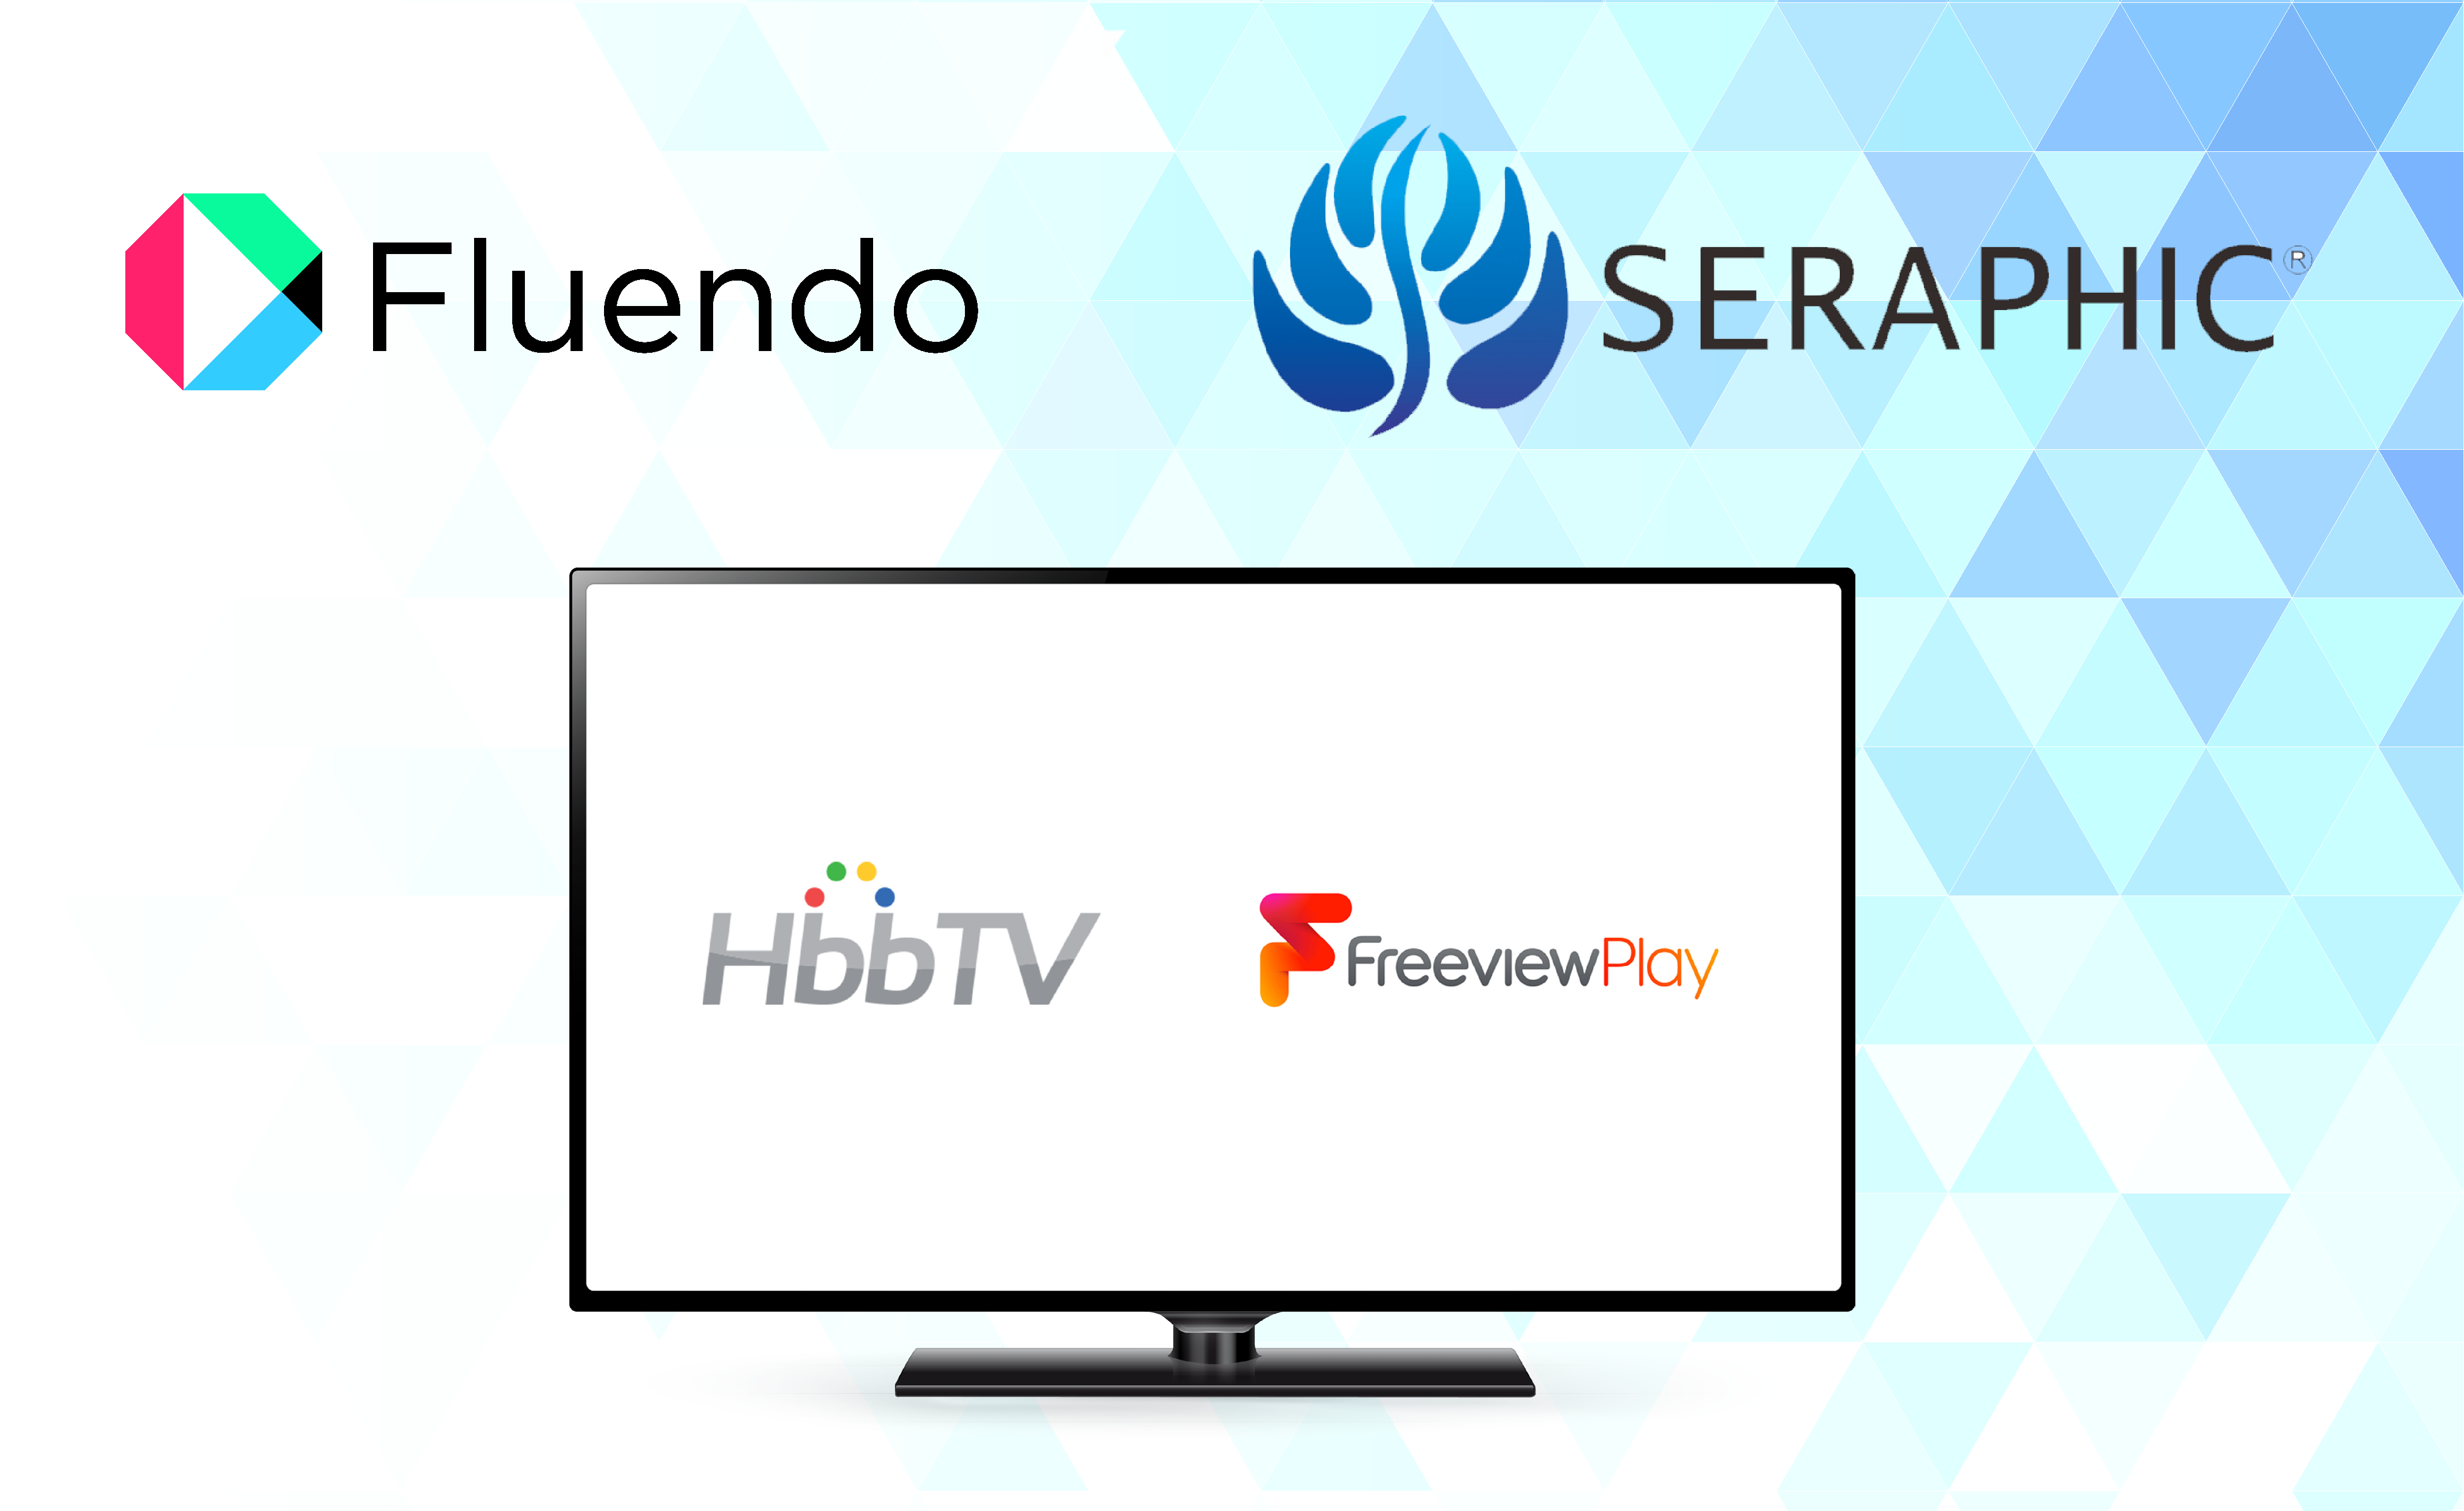 Fluendo and SERAPHIC showcase fully compliant HbbTV 2.0.1 and Freeview Play solutions